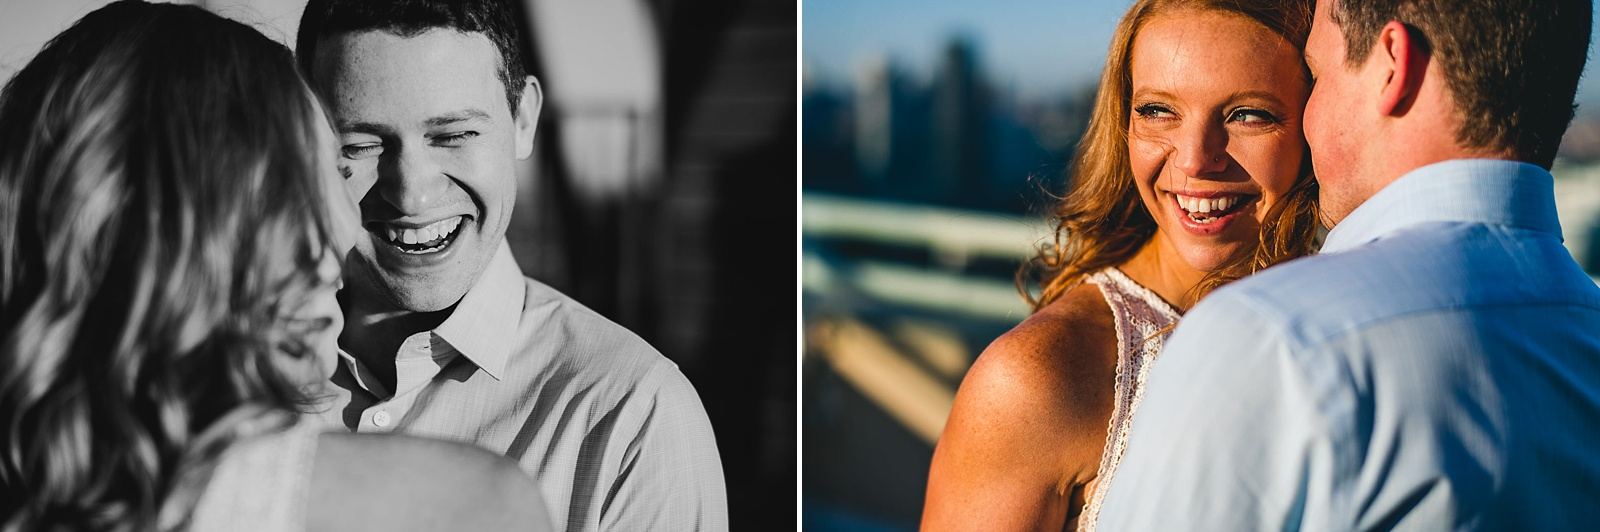 11 direct sun engagement photos - Rooftop Chicago Engagement Session // Aubyn + Danny